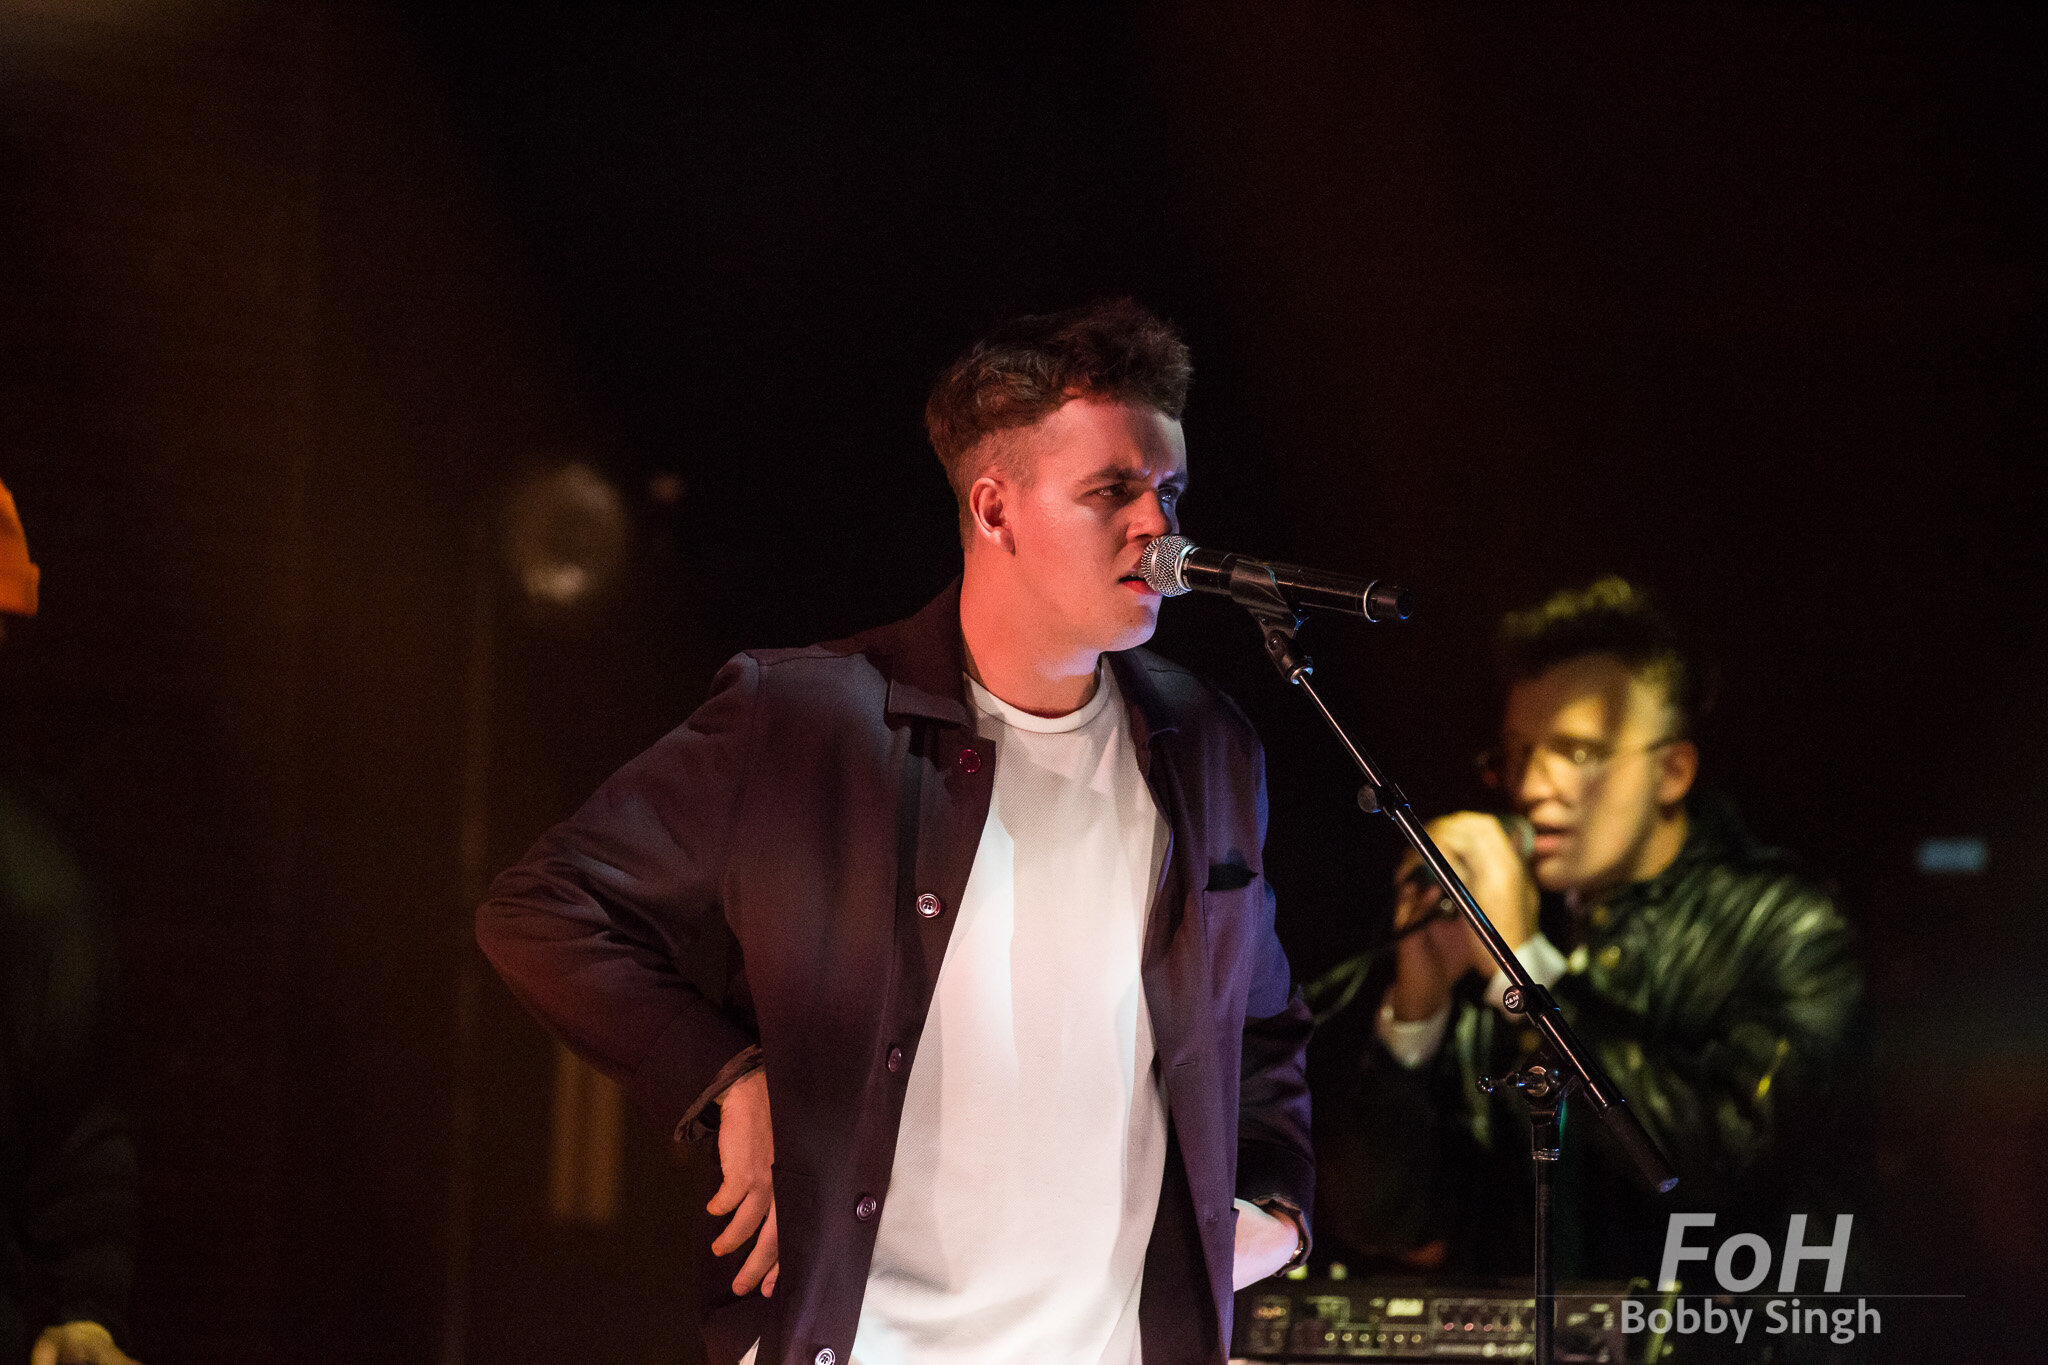 Les Louanges performs at the 2019 Polaris Music Prize Gala